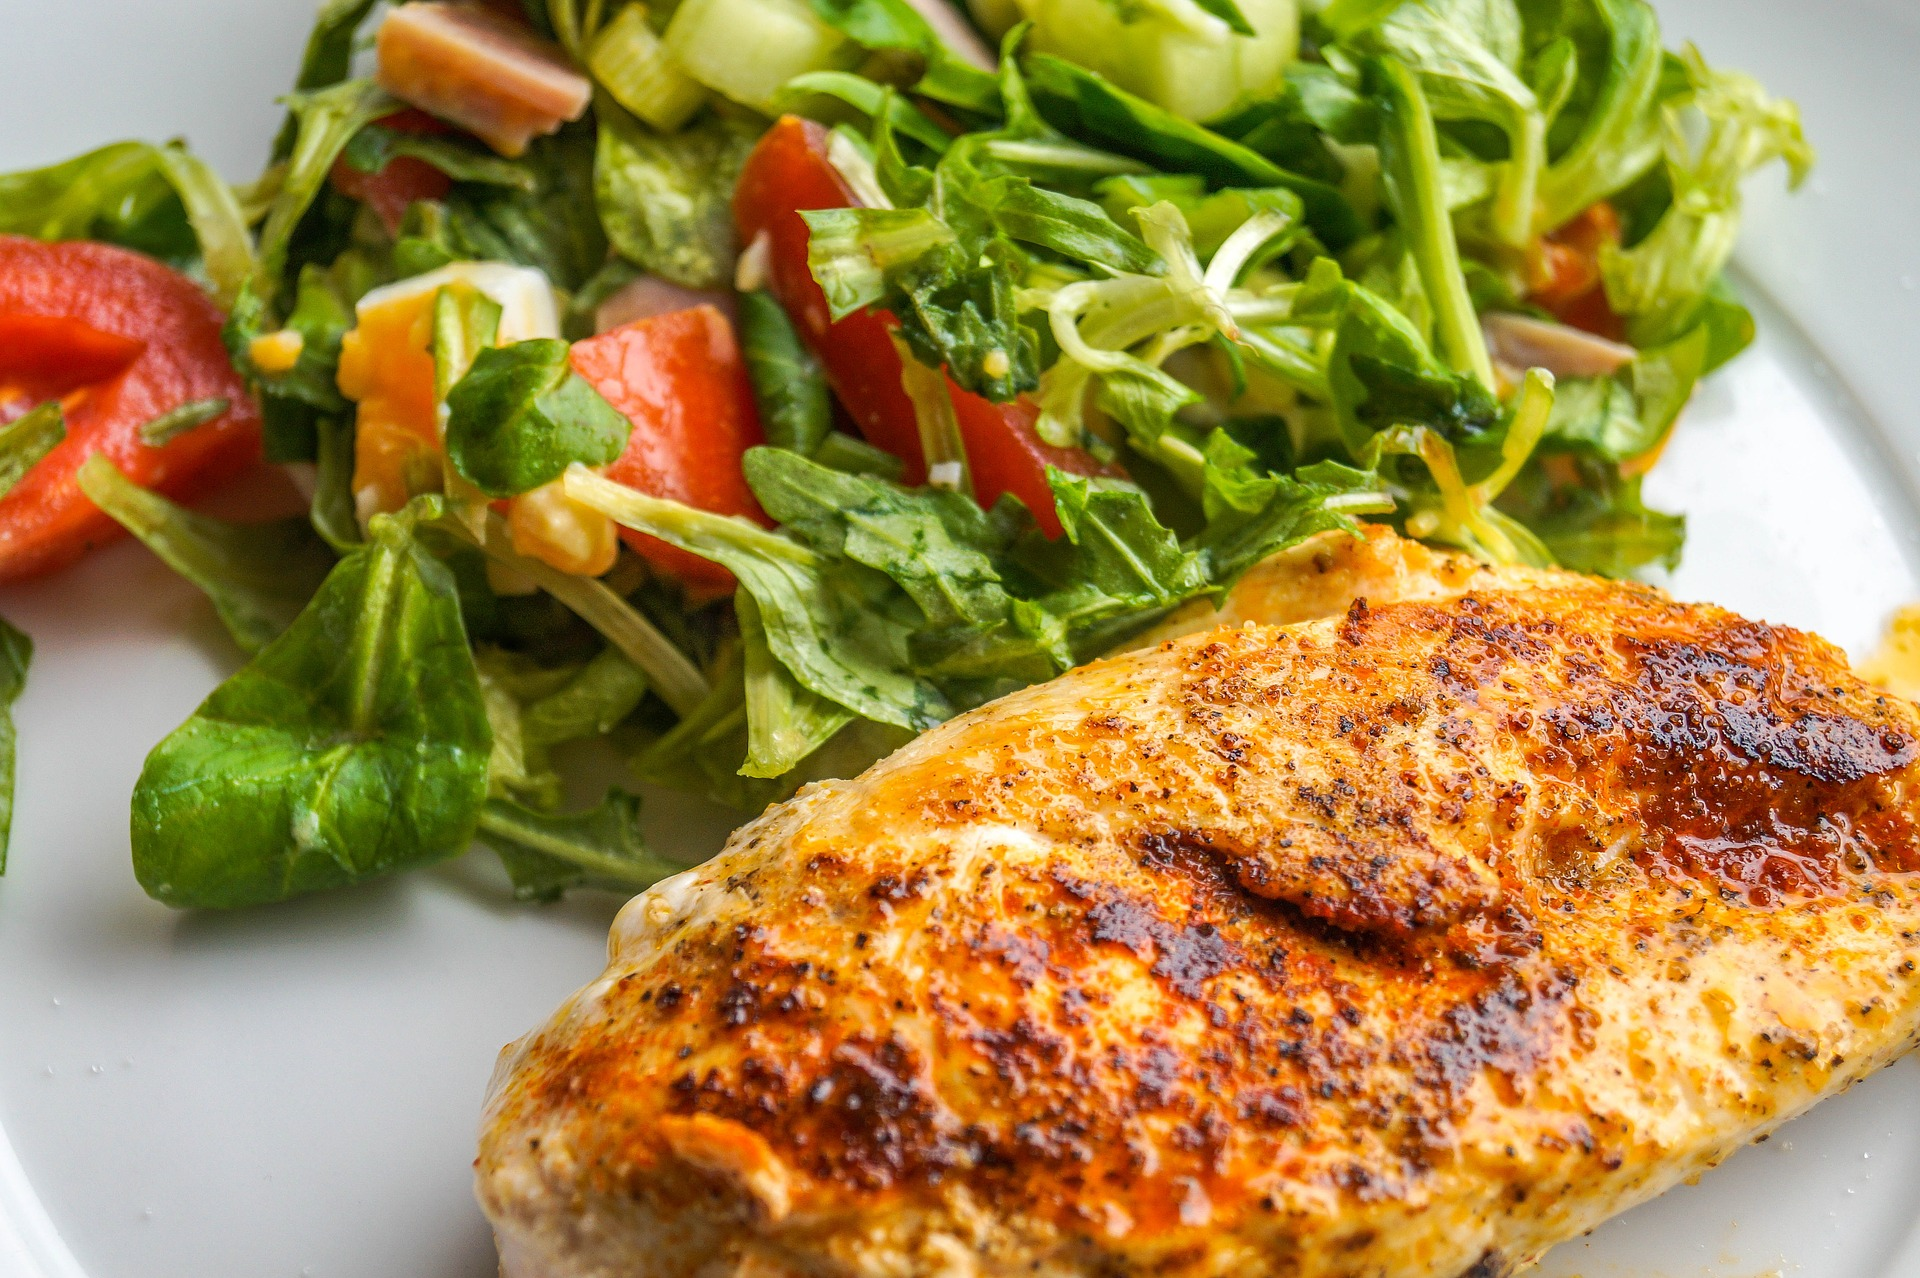 chicken breast fillet with salad